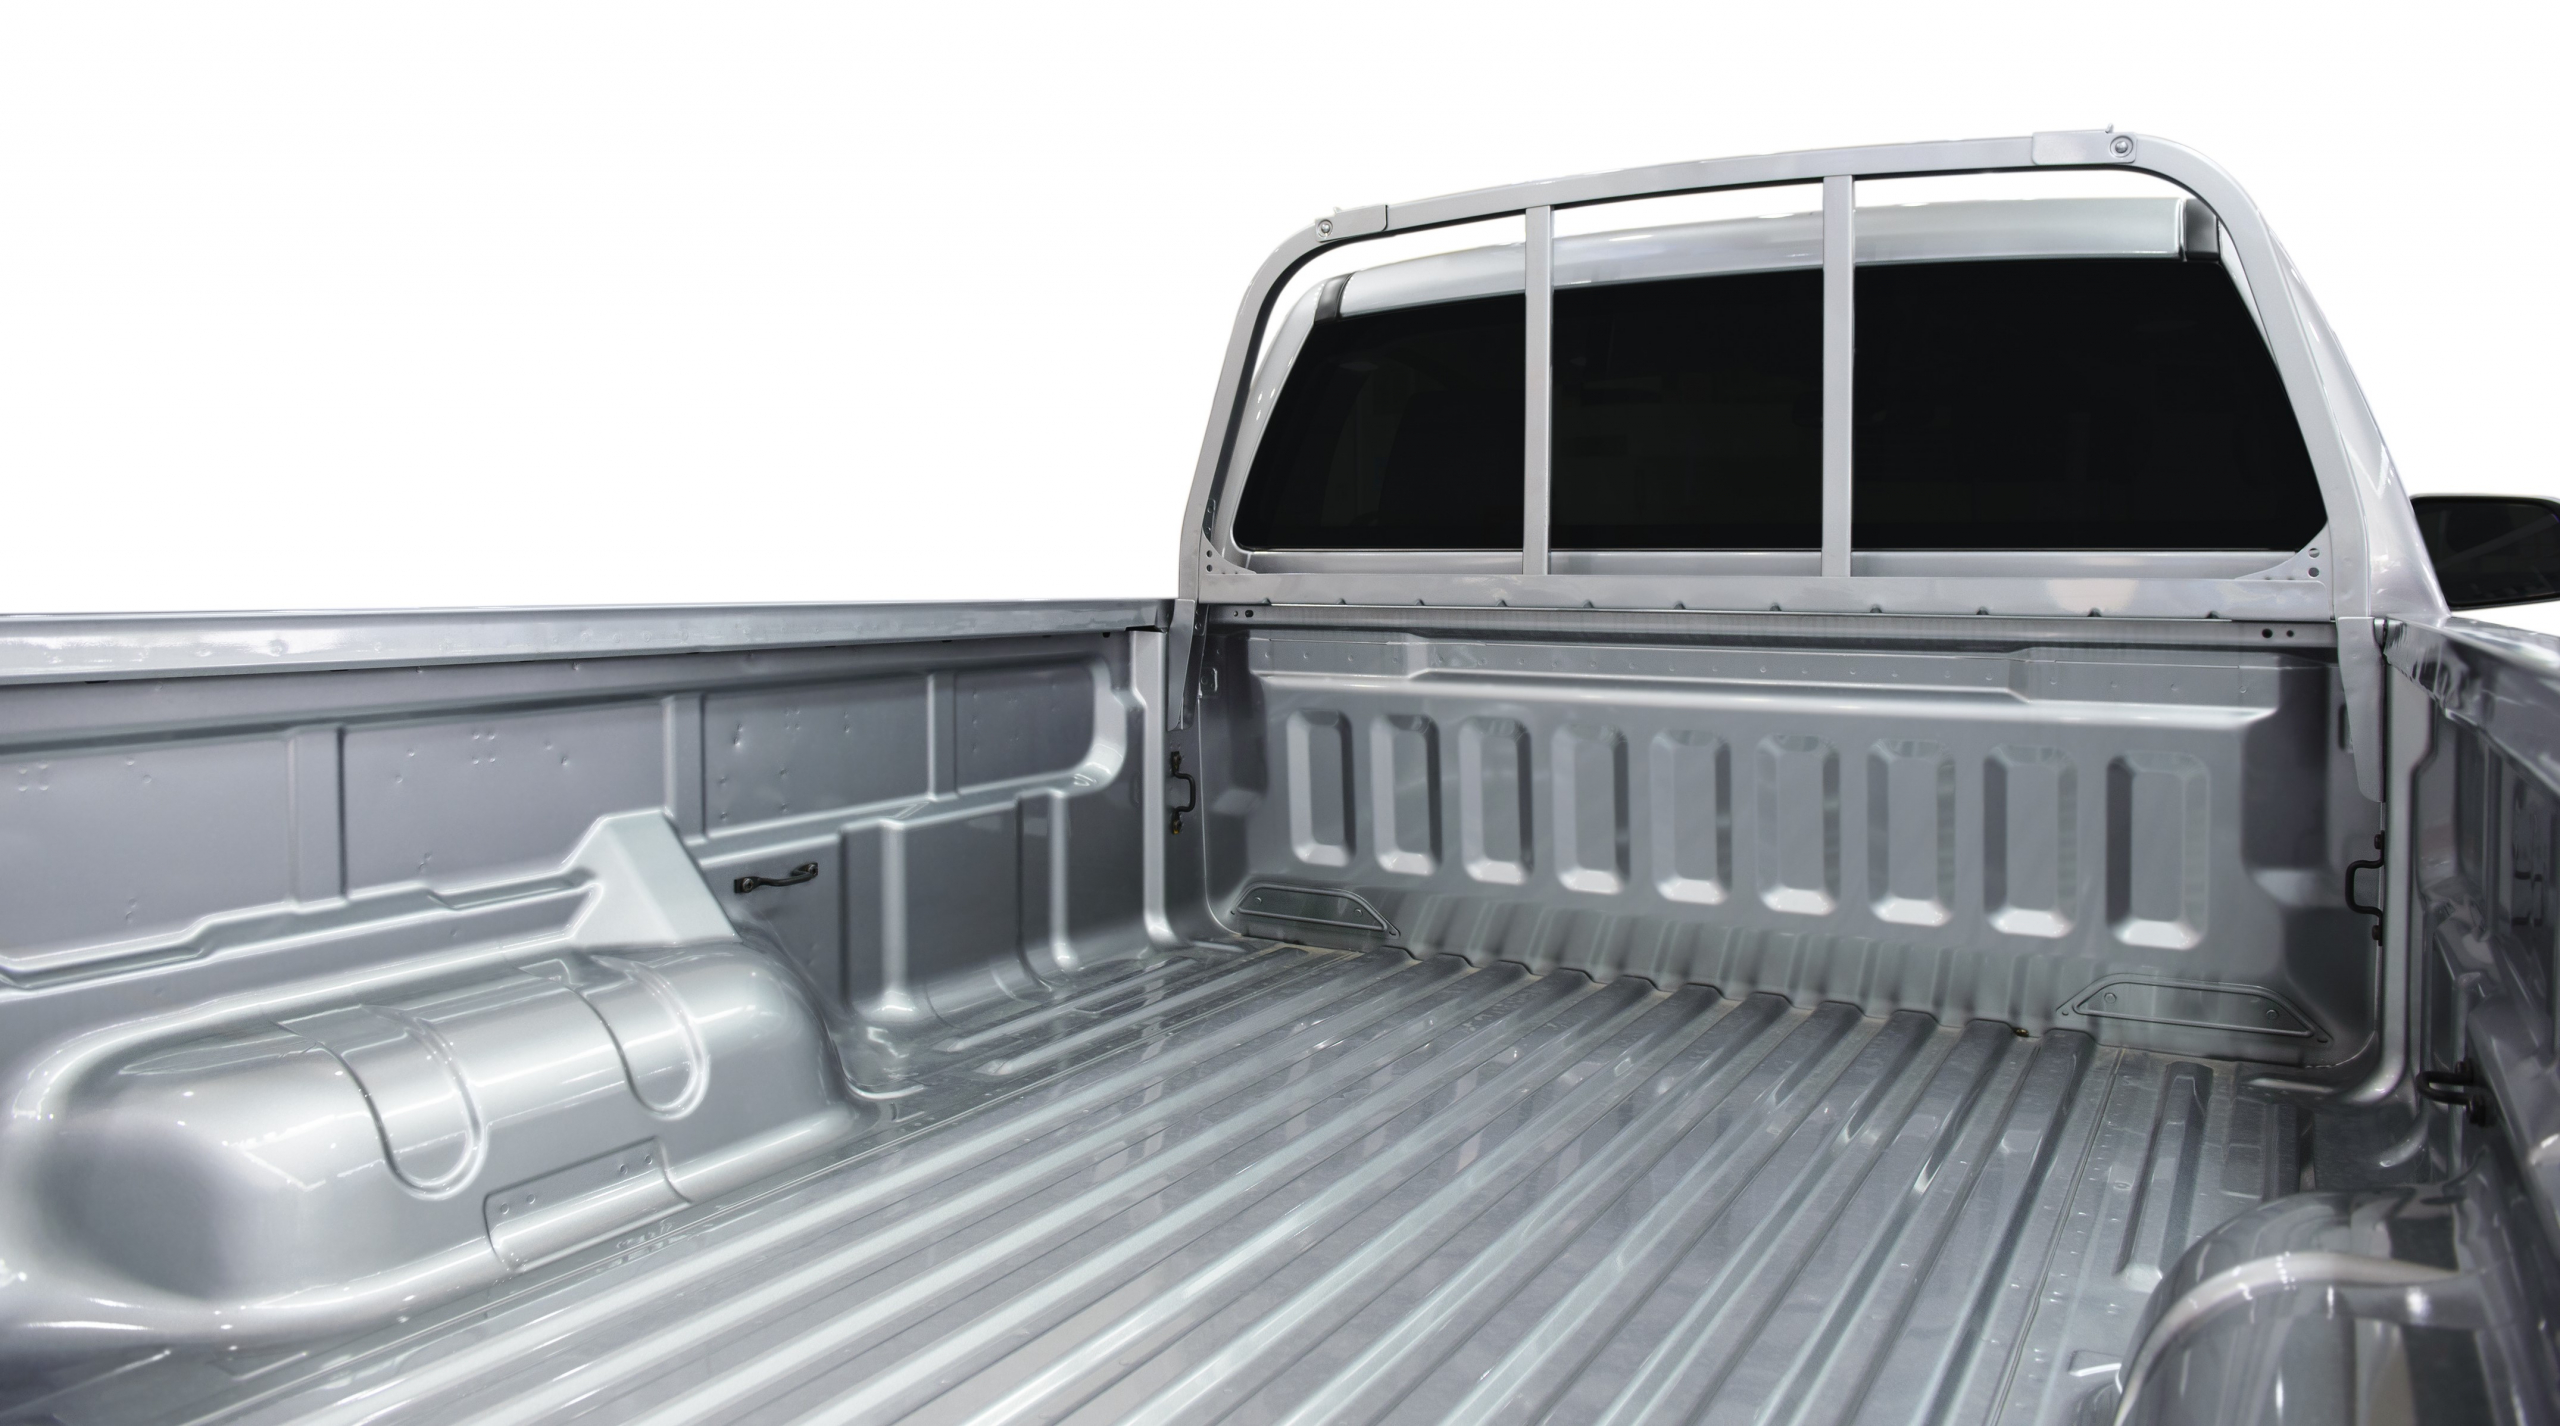 This image of the bed of a military-grade aluminum pickup truck compliments the text of the article. Imperia Engineering Partners recently redesigned the electrical system of an aluminum plant that supplies automobile manufacturers with such aluminum.